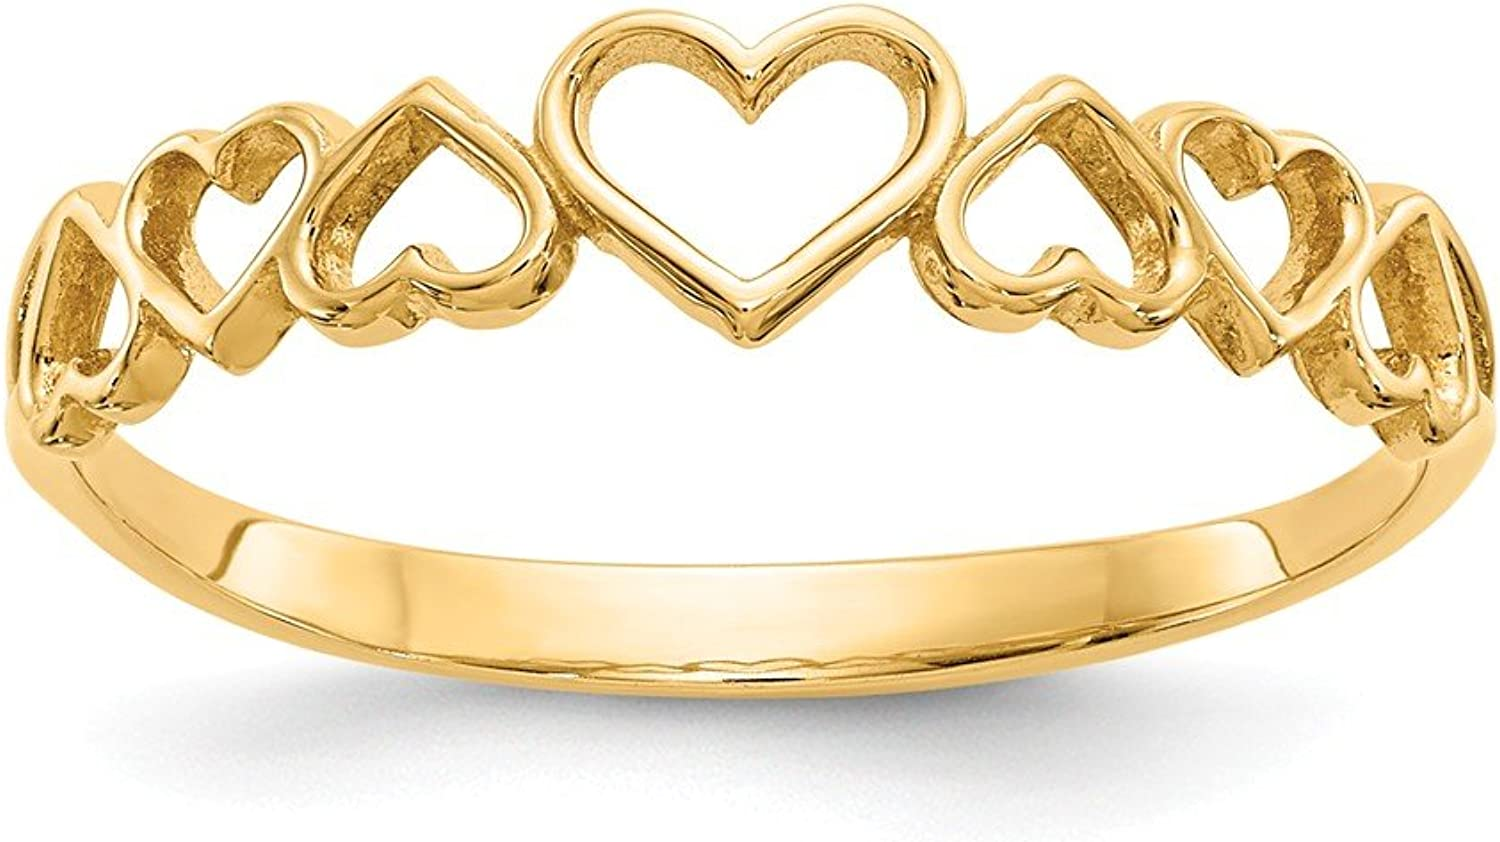 14k Yellow gold Hearts Ring for Women Size 7